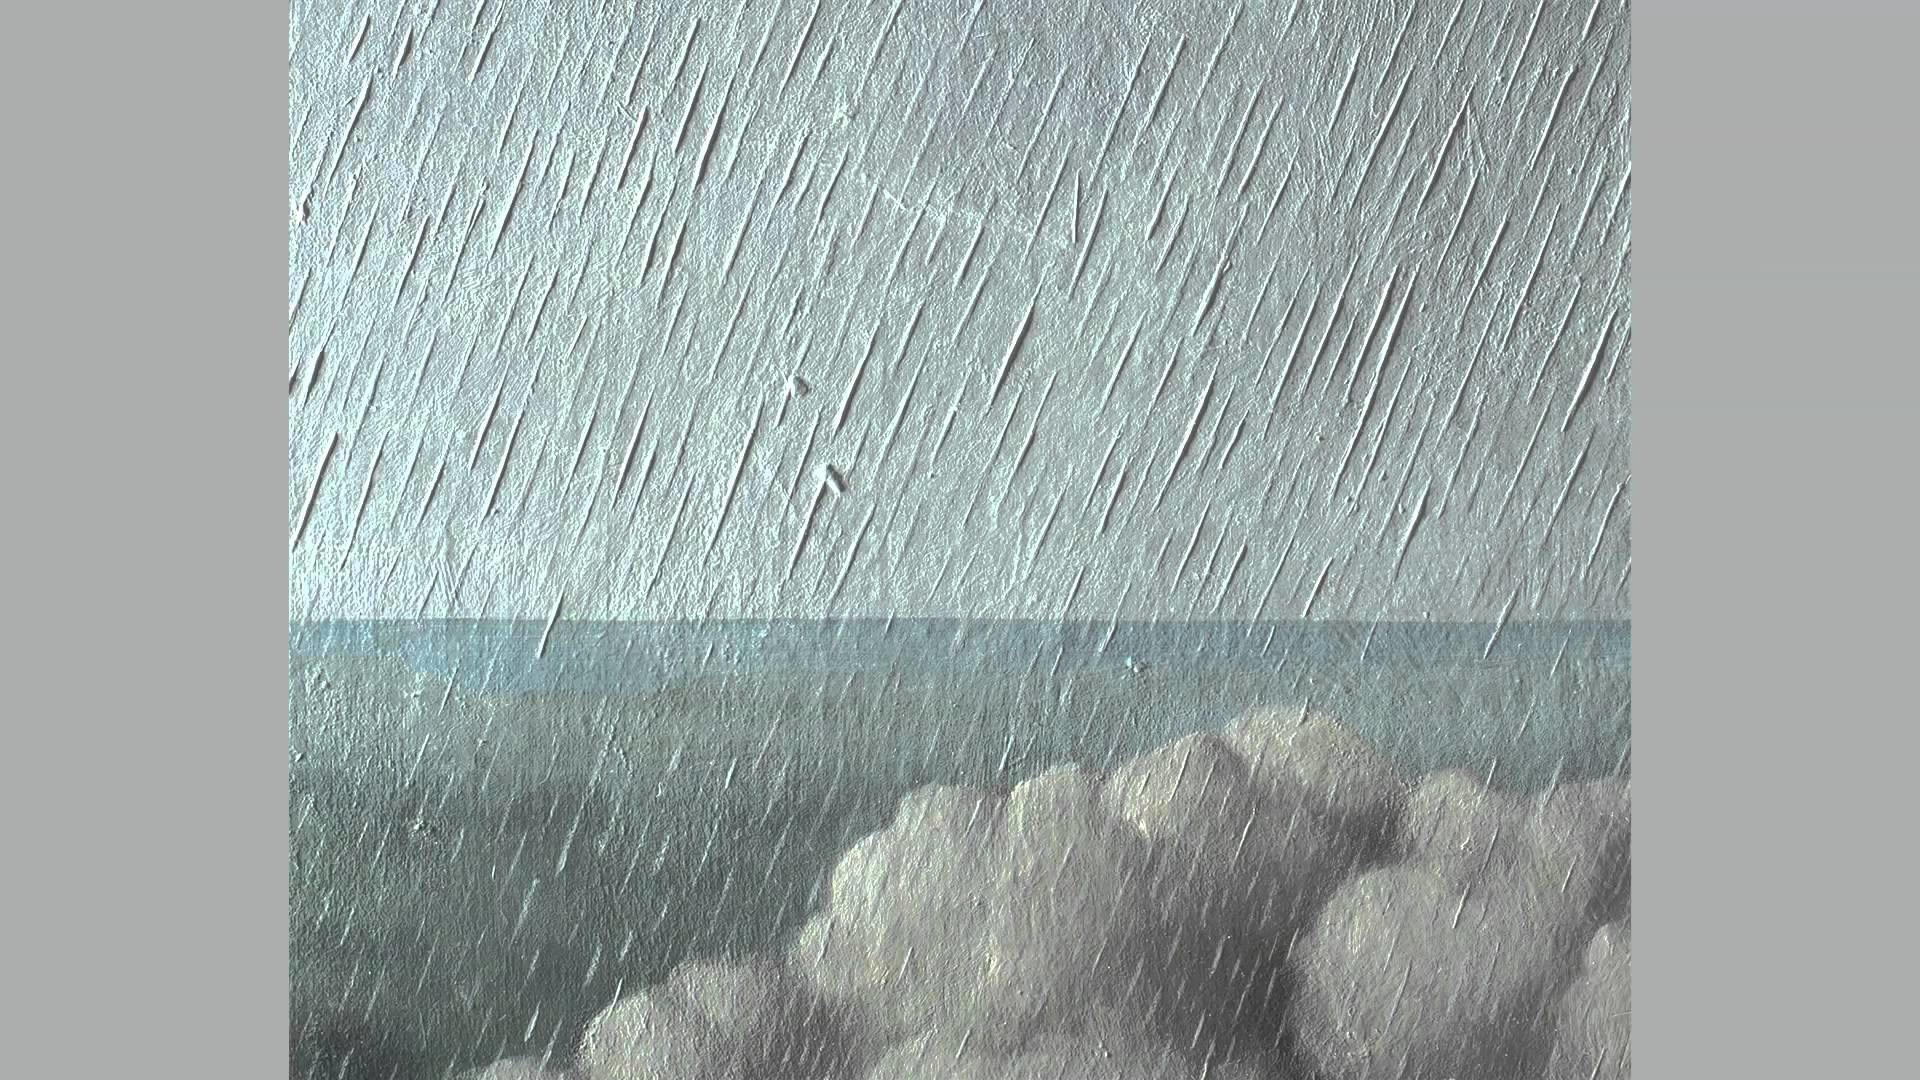 """René Magritte's """"The Song of the Storm"""""""